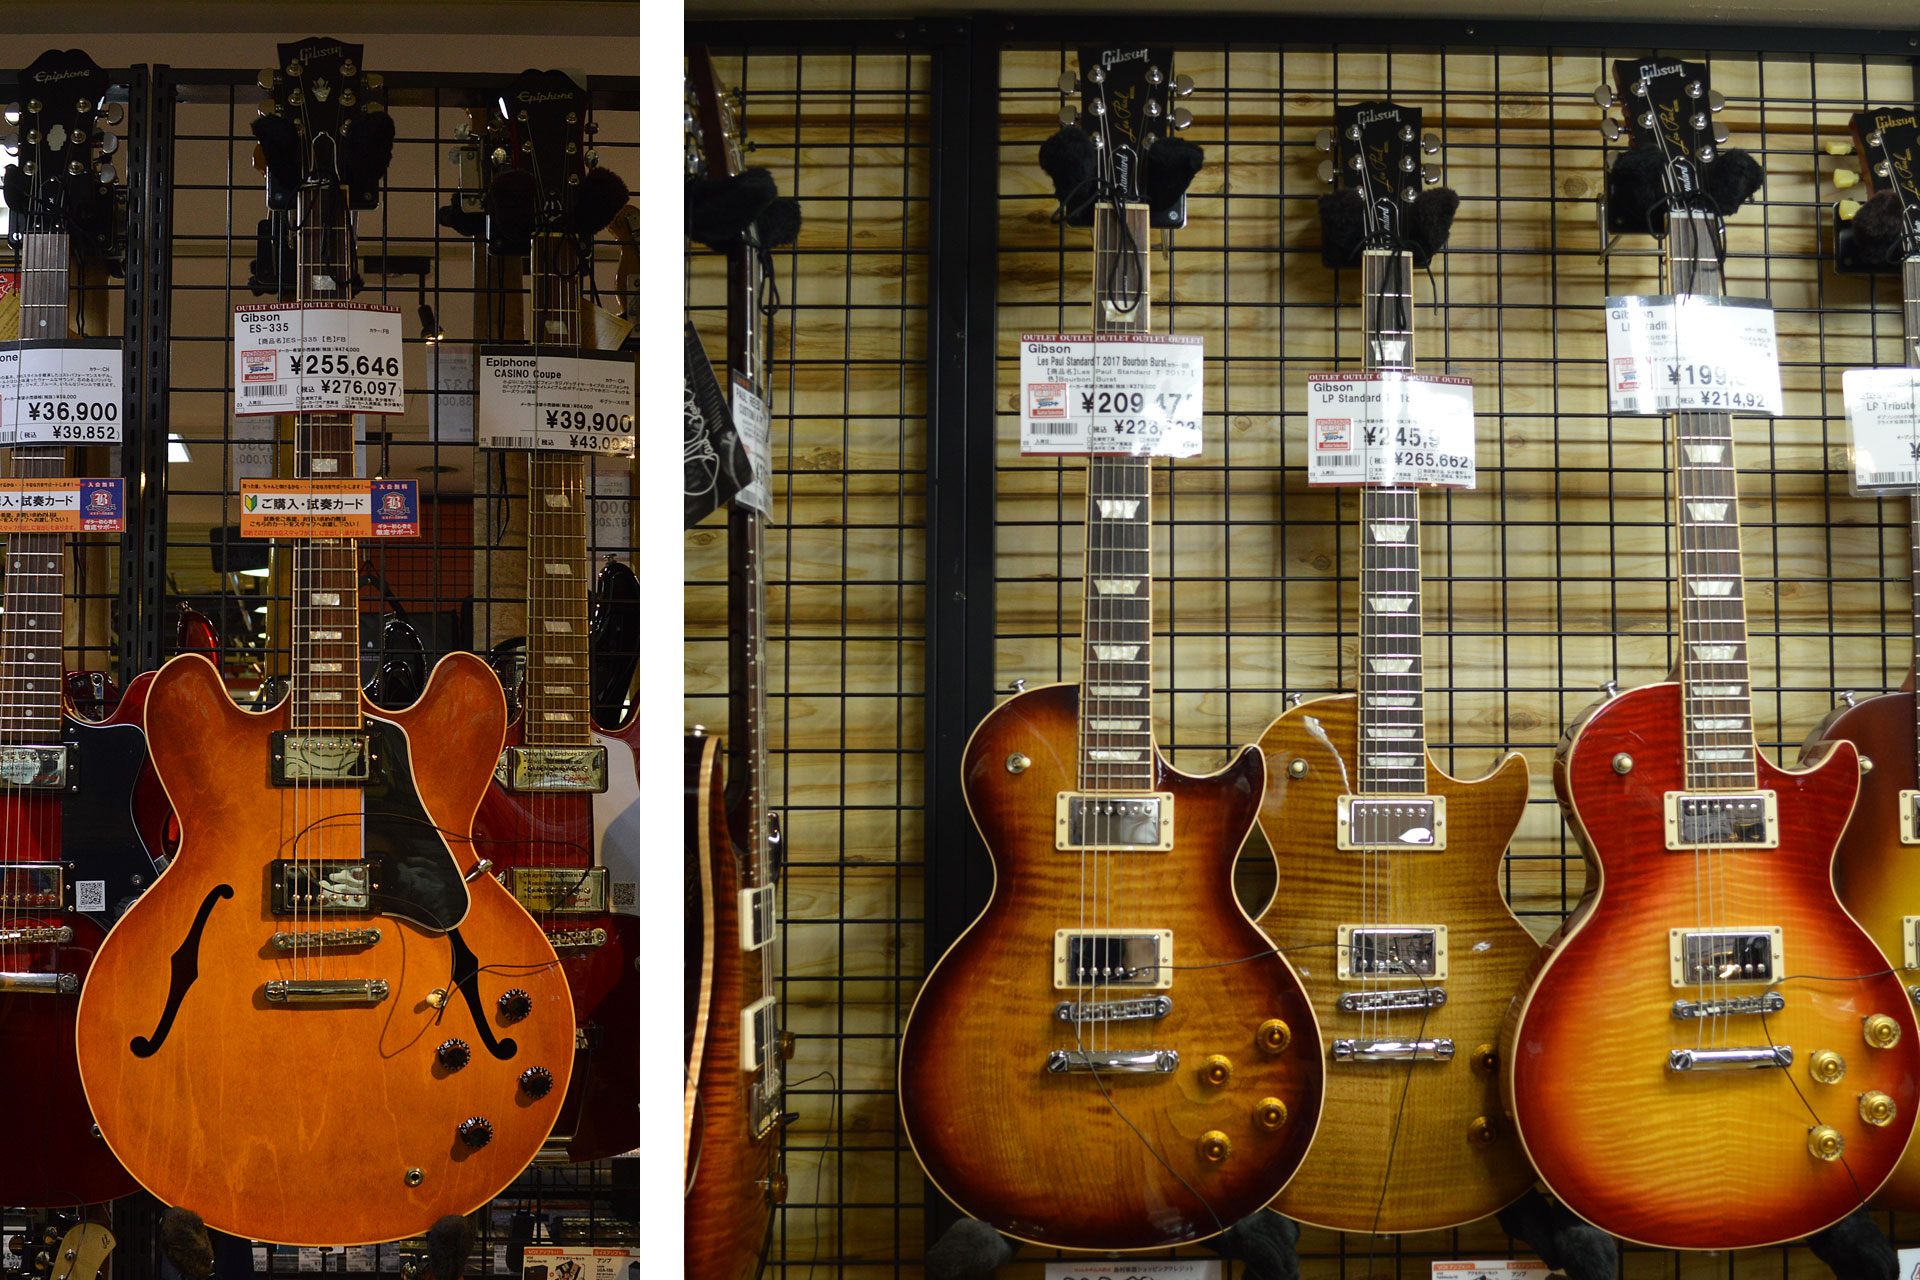 Gibson アウトレット・エレキギター店頭画像